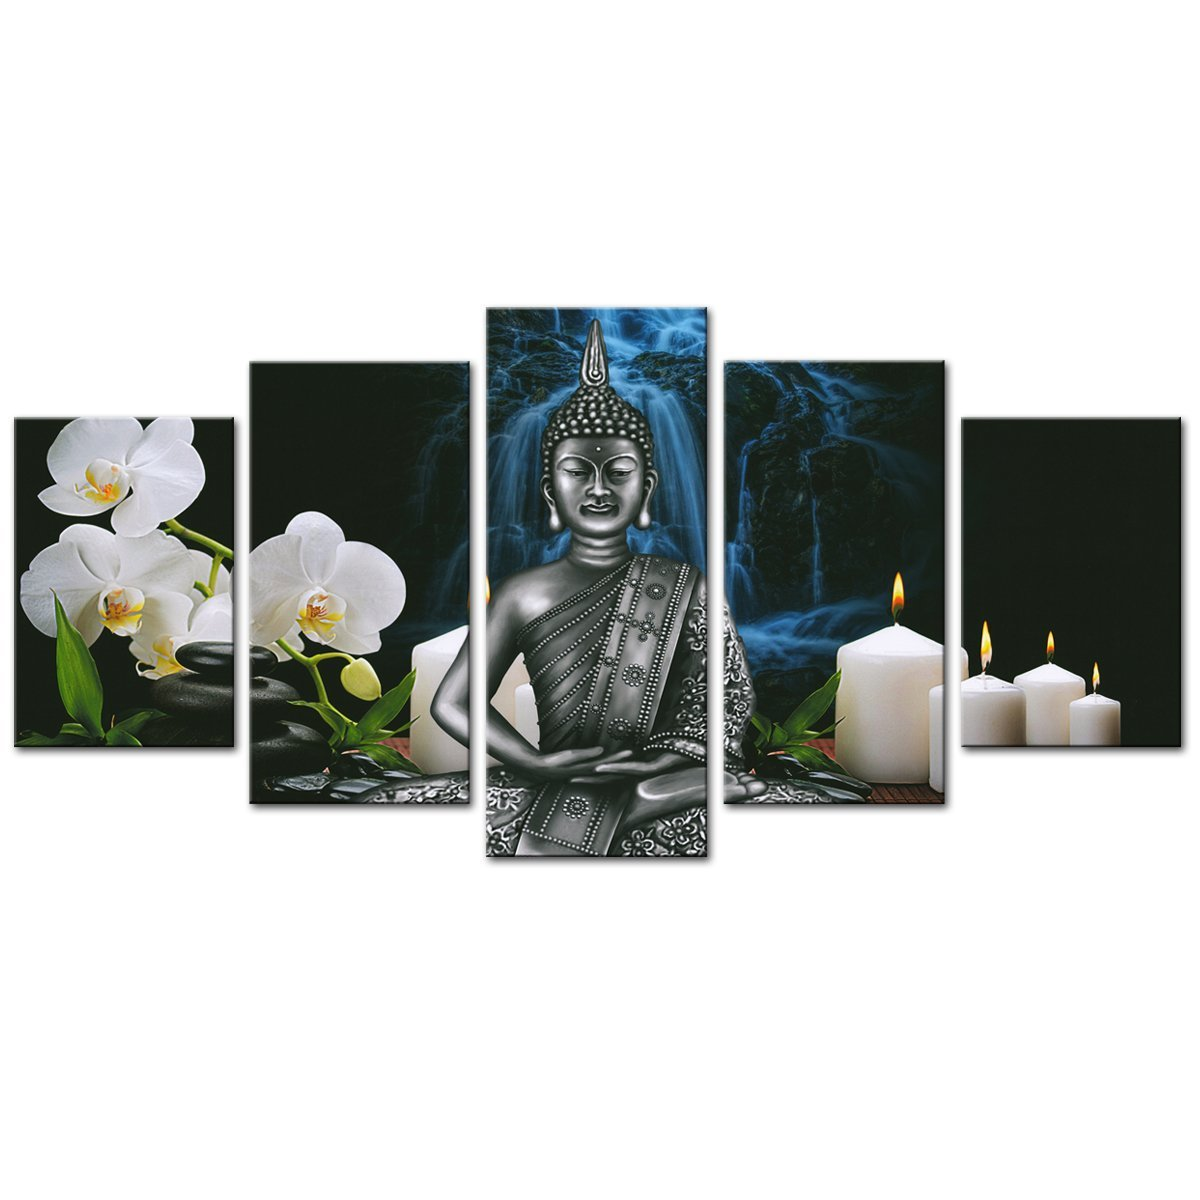 Amosi art buddha canvas wall art orchid flower and candles picture prints on canvas for living room decor artwork with stretch frame